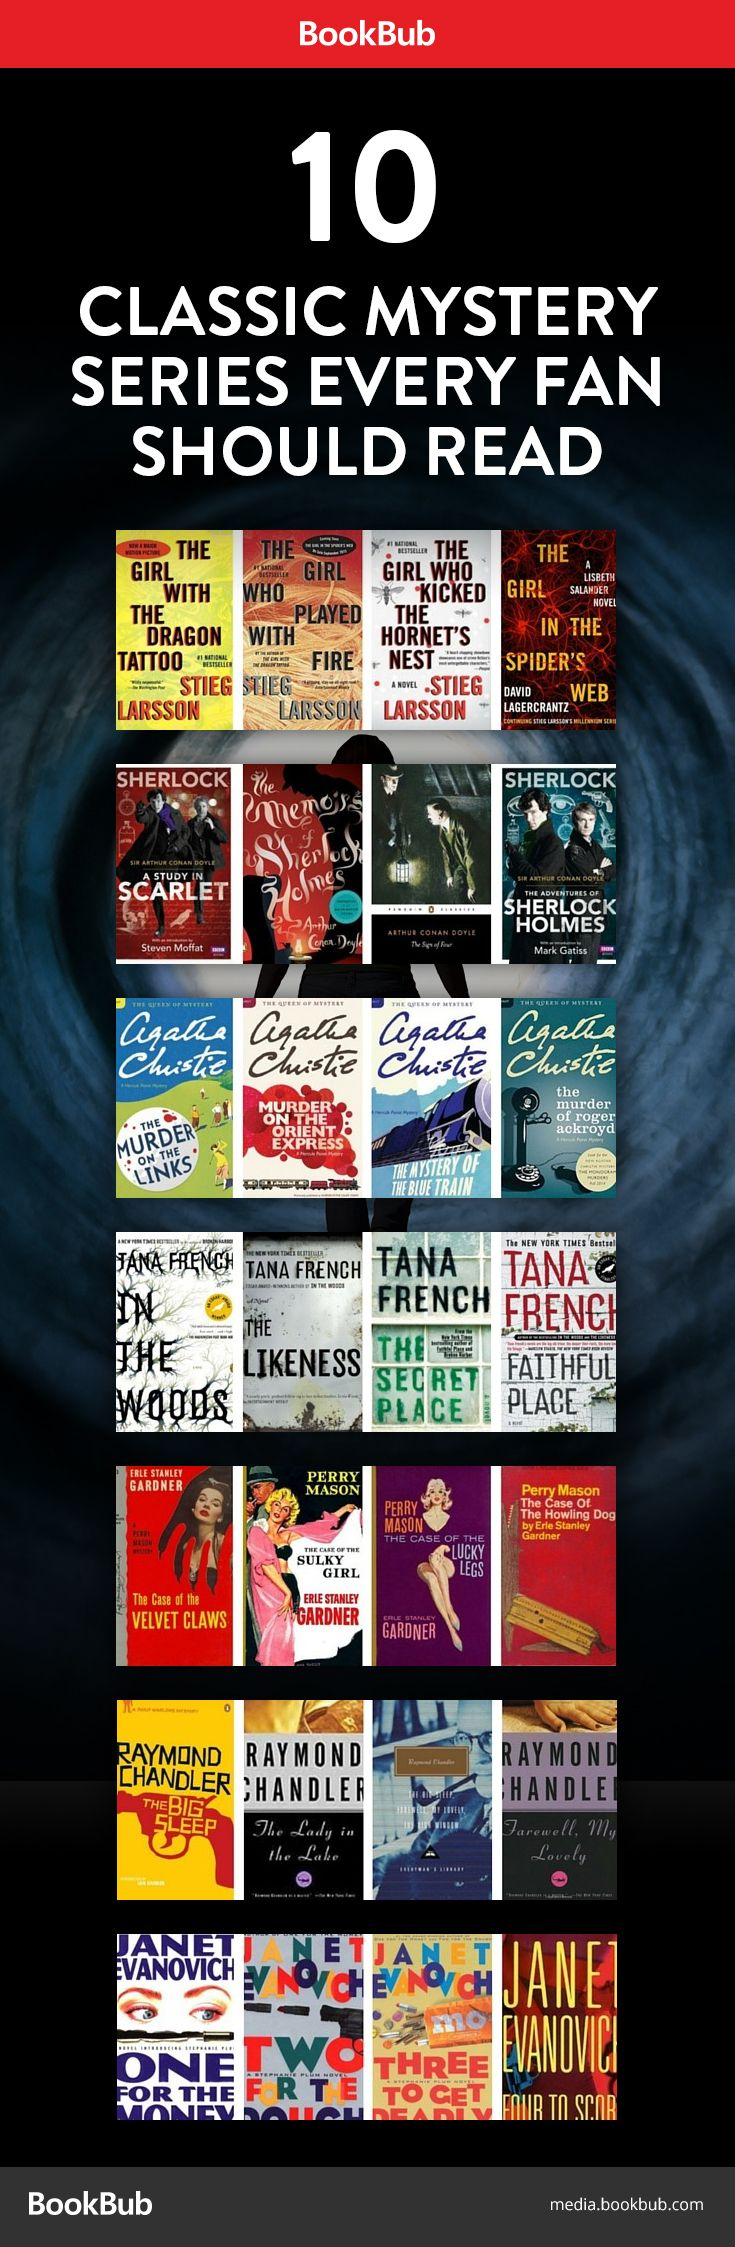 Agatha Christie, Janet Evanovich, Alexander McCall Smith and more! Check out our mystery series superlatives and add your own.